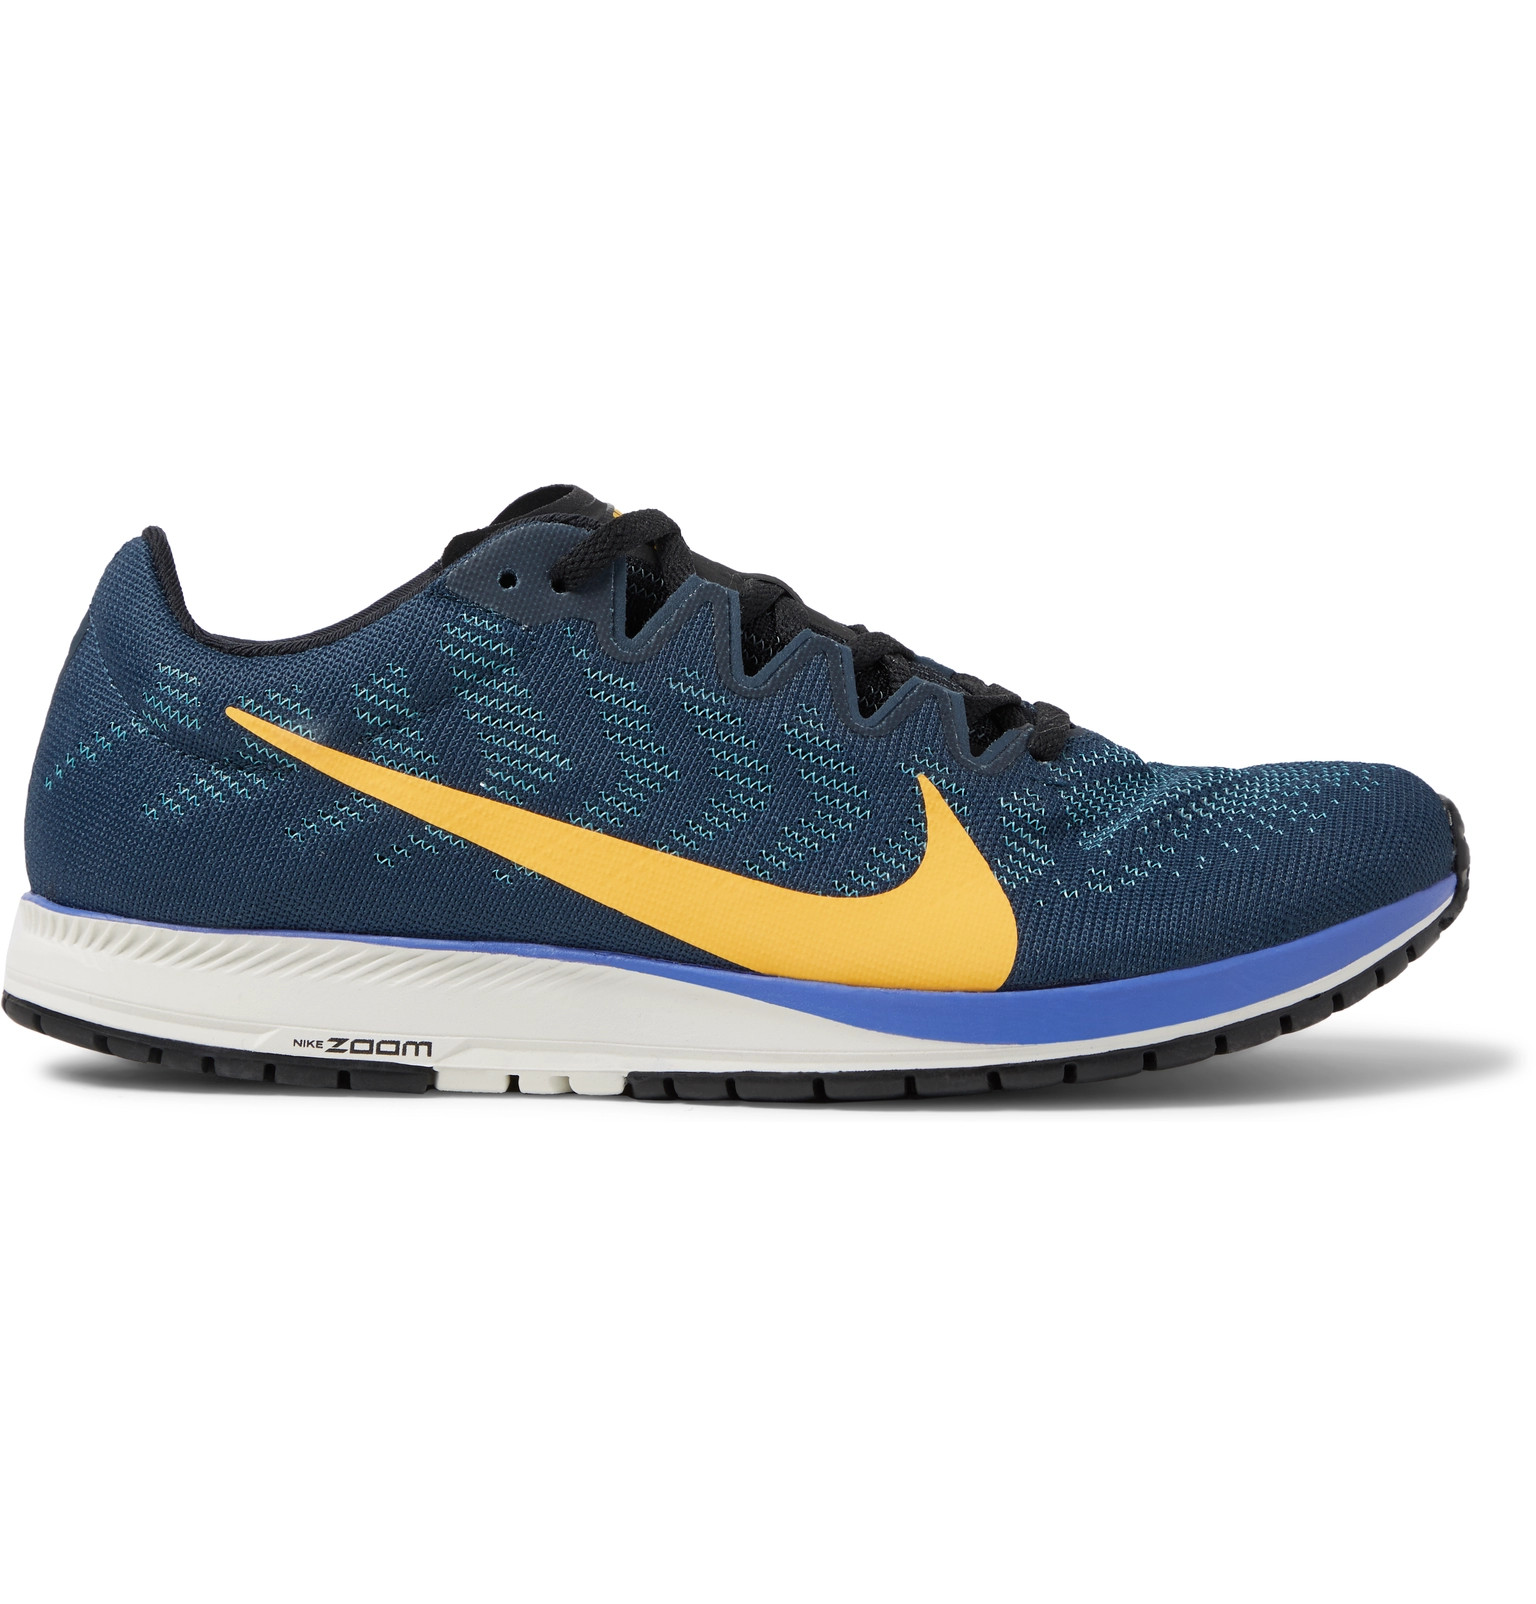 énorme réduction f5f8a 7e031 Nike Running - Air Zoom Streak 7 Mesh Running Sneakers